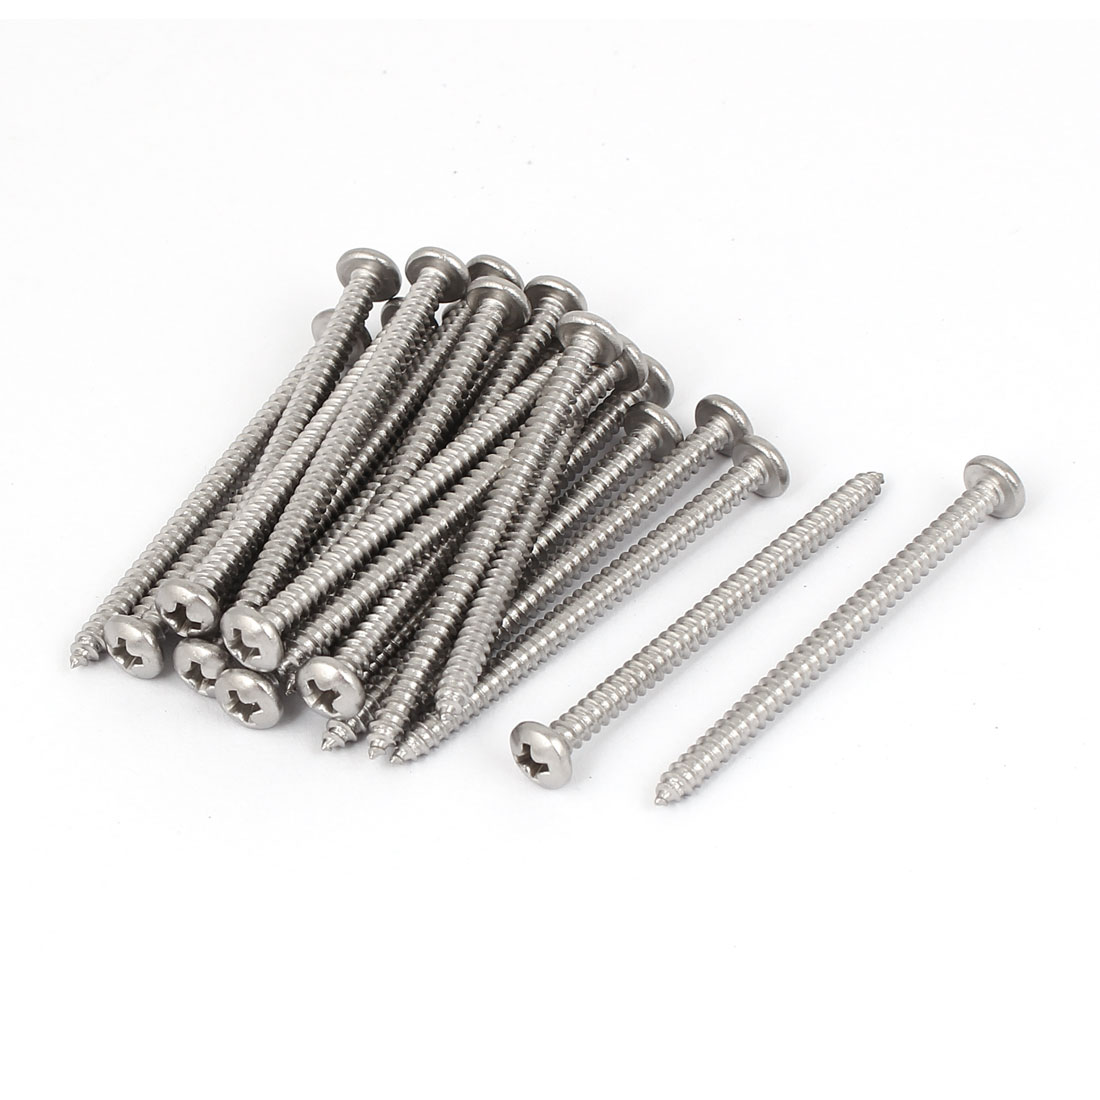 #6 M3.5x50mm Stainless Steel Phillips Round Pan Head Self Tapping Screws 25pcs